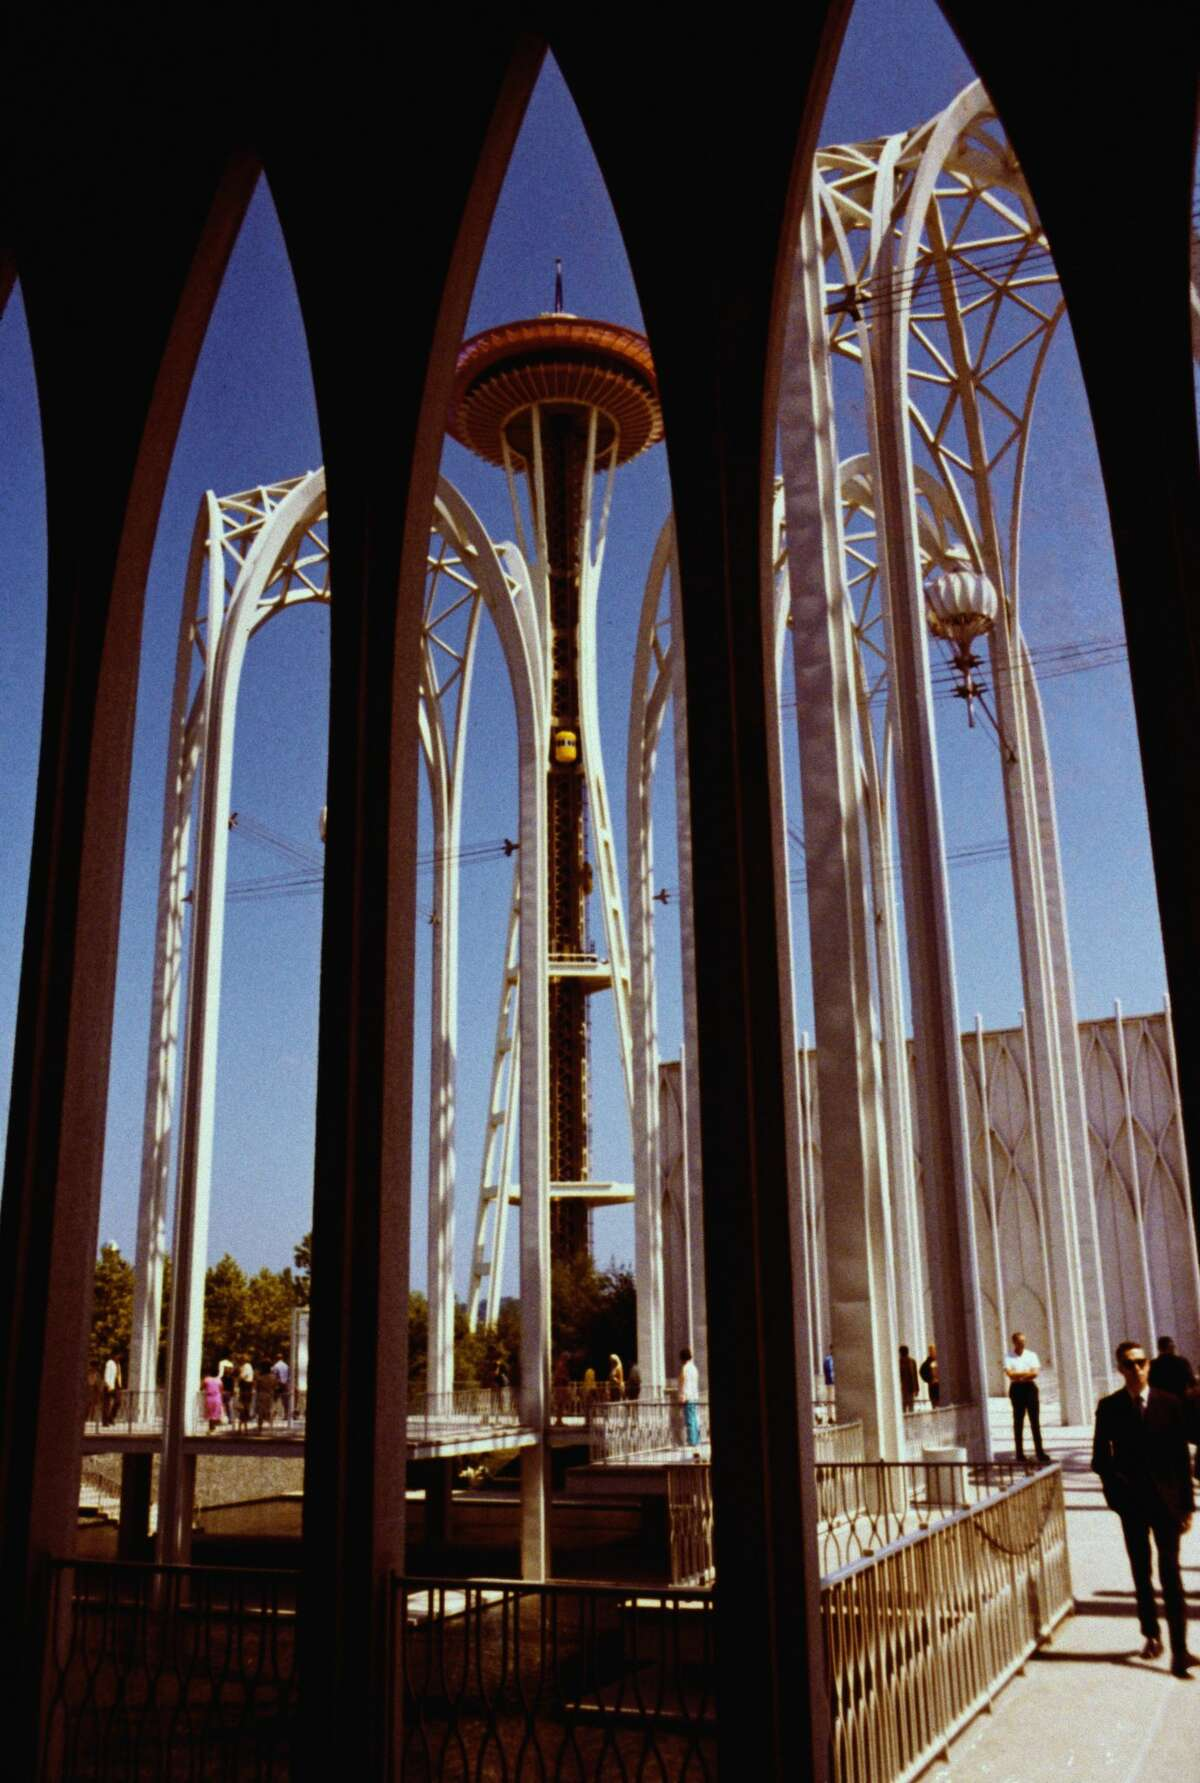 The Pacific Science Center in Seattle, Washington, with the Space Needle in the background, circa 1968. The Pacific Science Center was designed by Minoru Yamasaki for the 1962 Seattle World's Fair. (Photo by Robert M. Keith/Archive Photos/Getty Images)